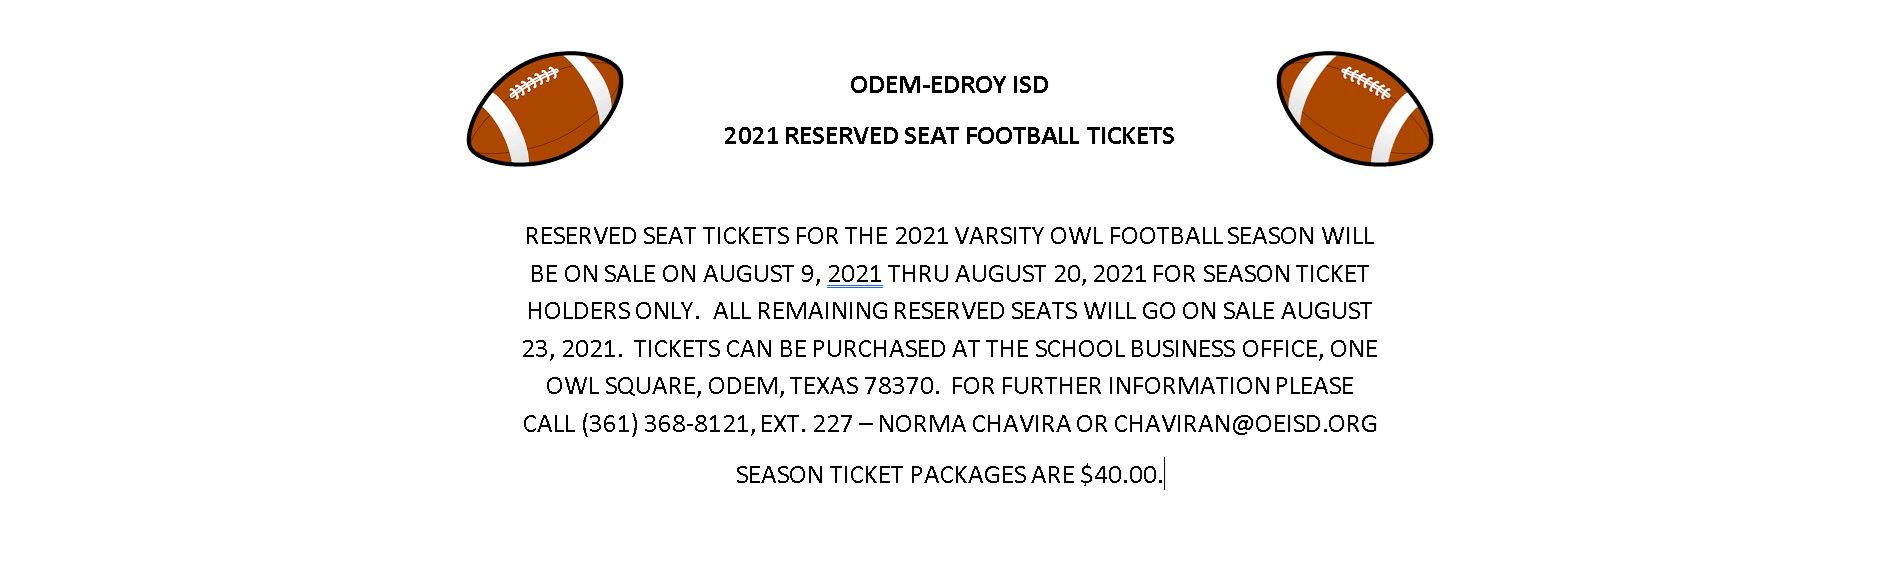 2021 RESERVED SEAT FOOTBALL TICKETS